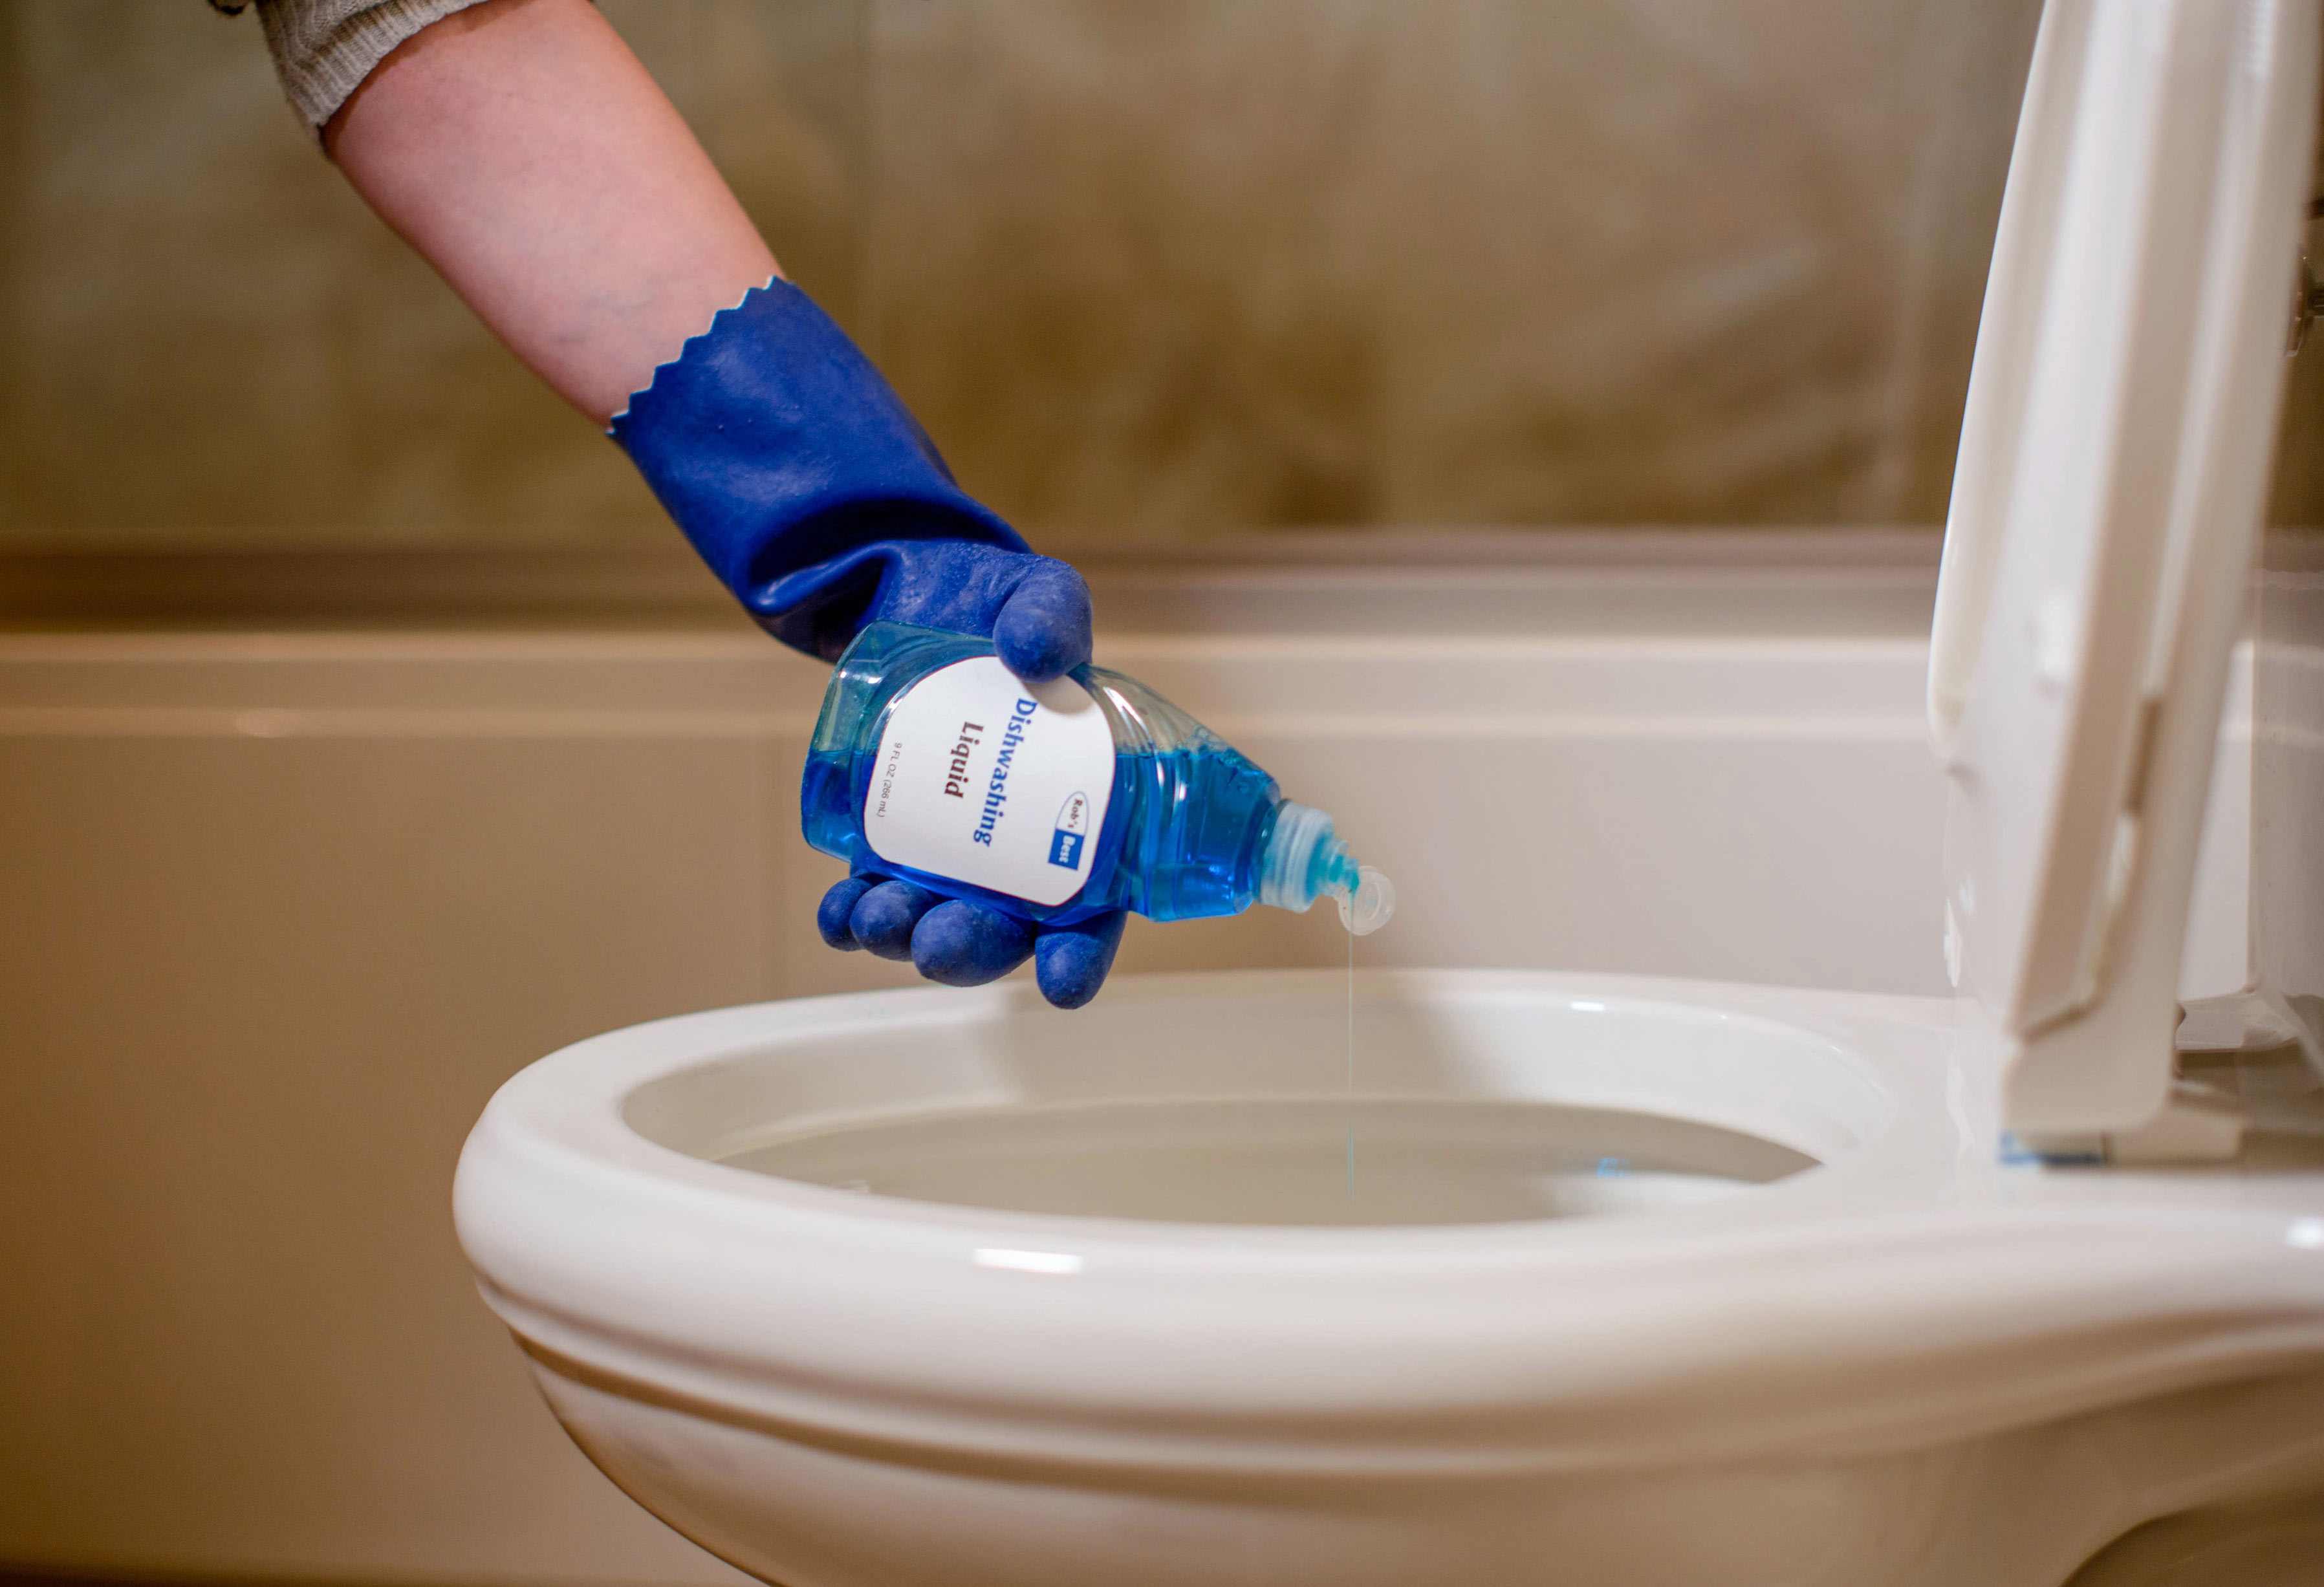 Person pouring diswashing soap in toilet